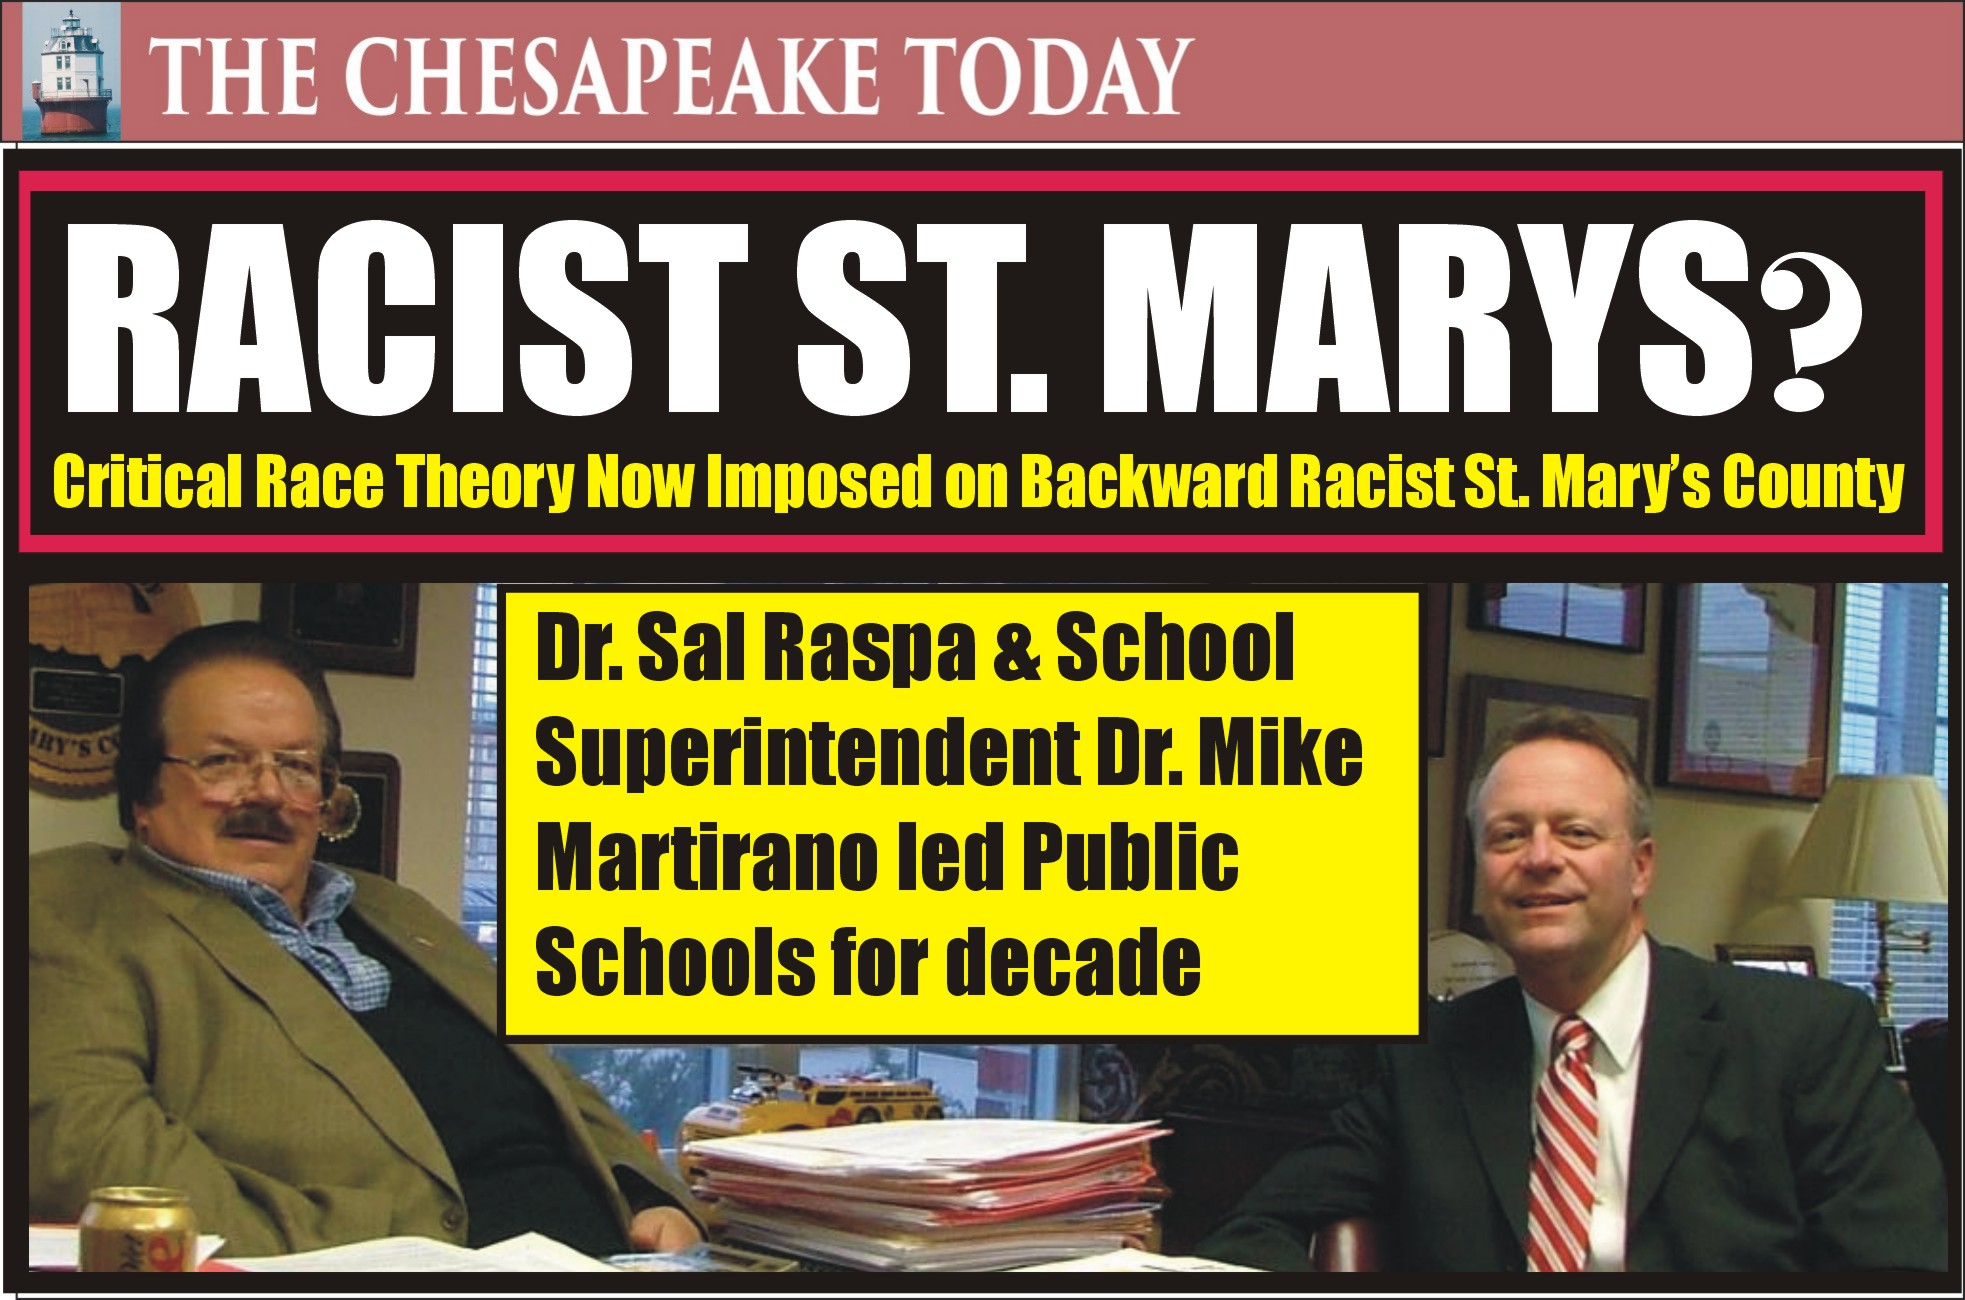 RACIST ST. MARY'S? Critical Race Theory now being imposed on St. Mary's County Public Schools; who knew that the schools were being led by white supremacists all these years?